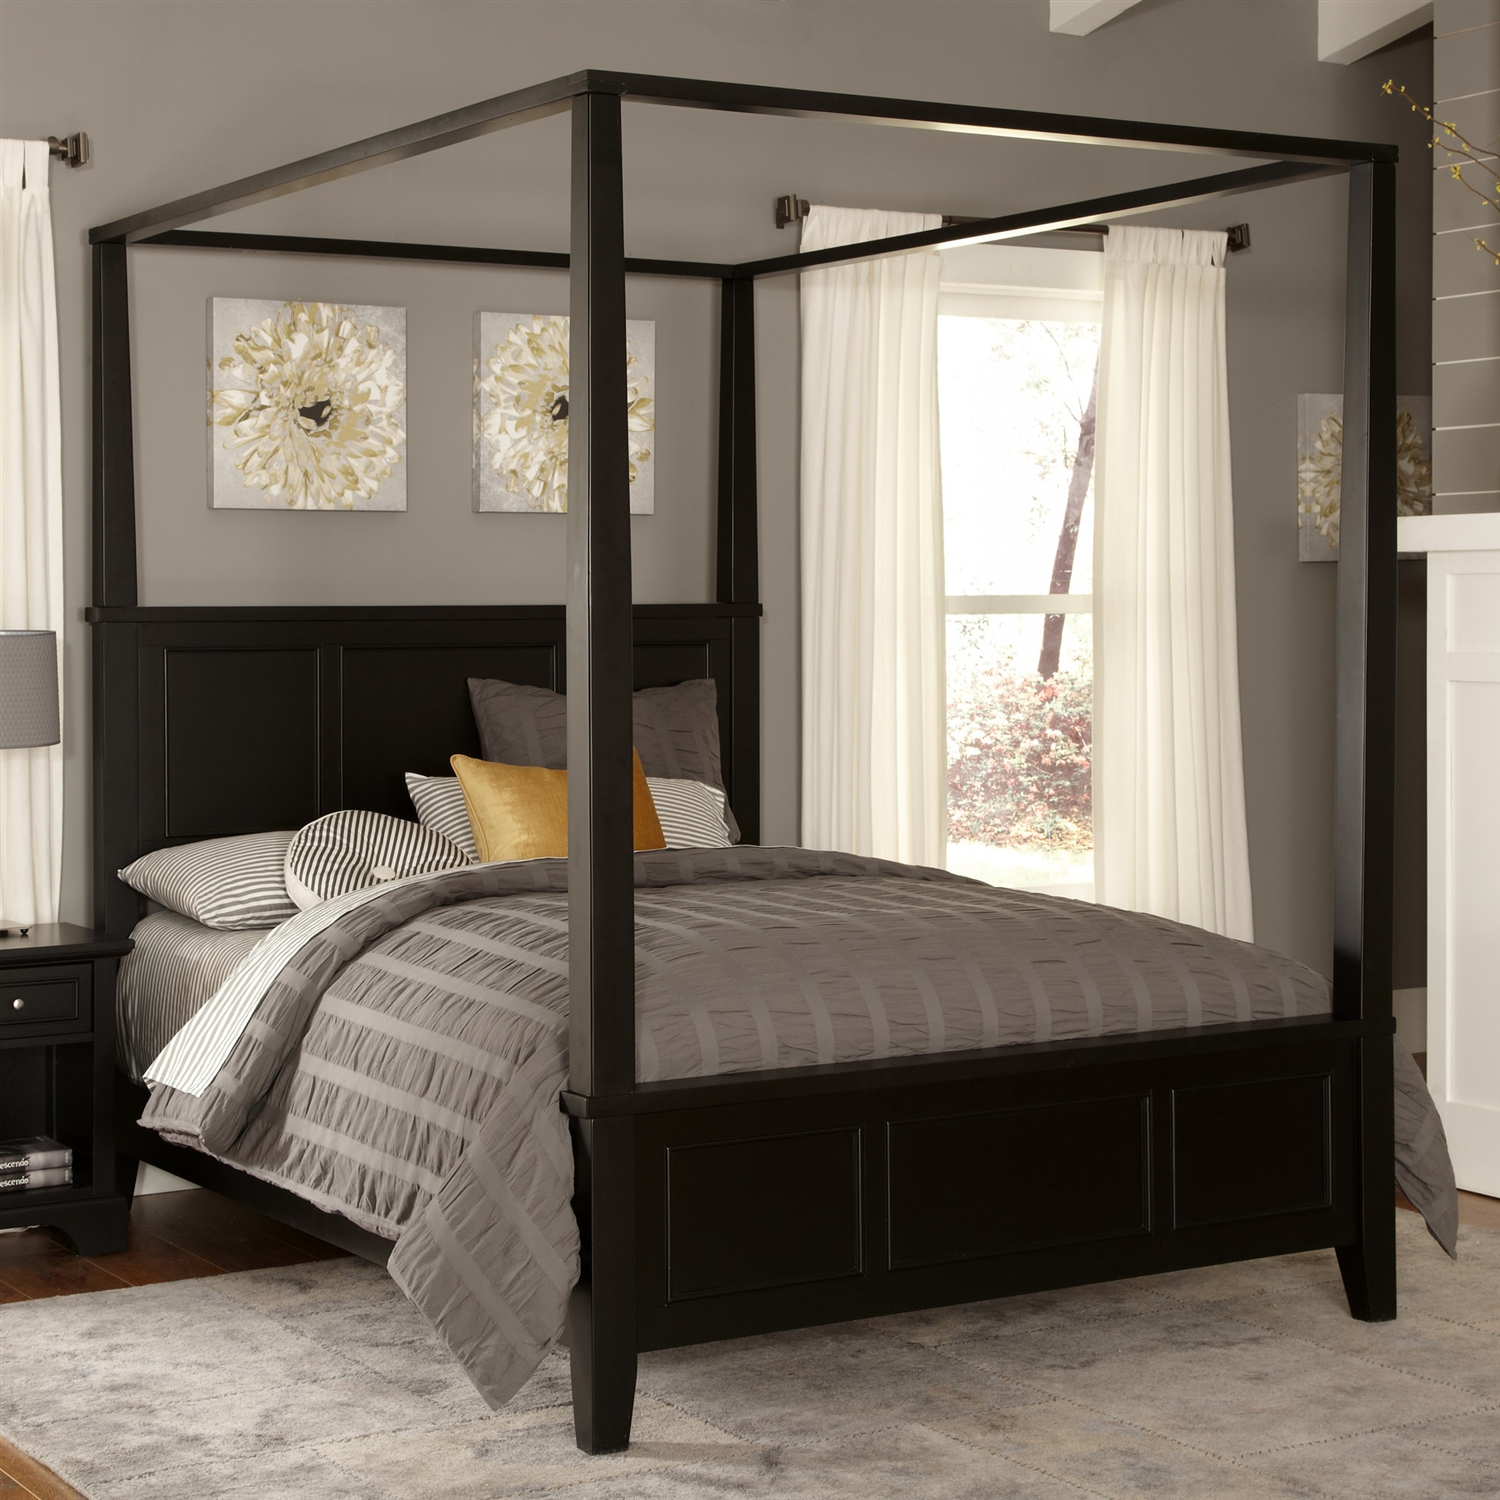 Image of: King Size Canopy Poster Bedroom Sets